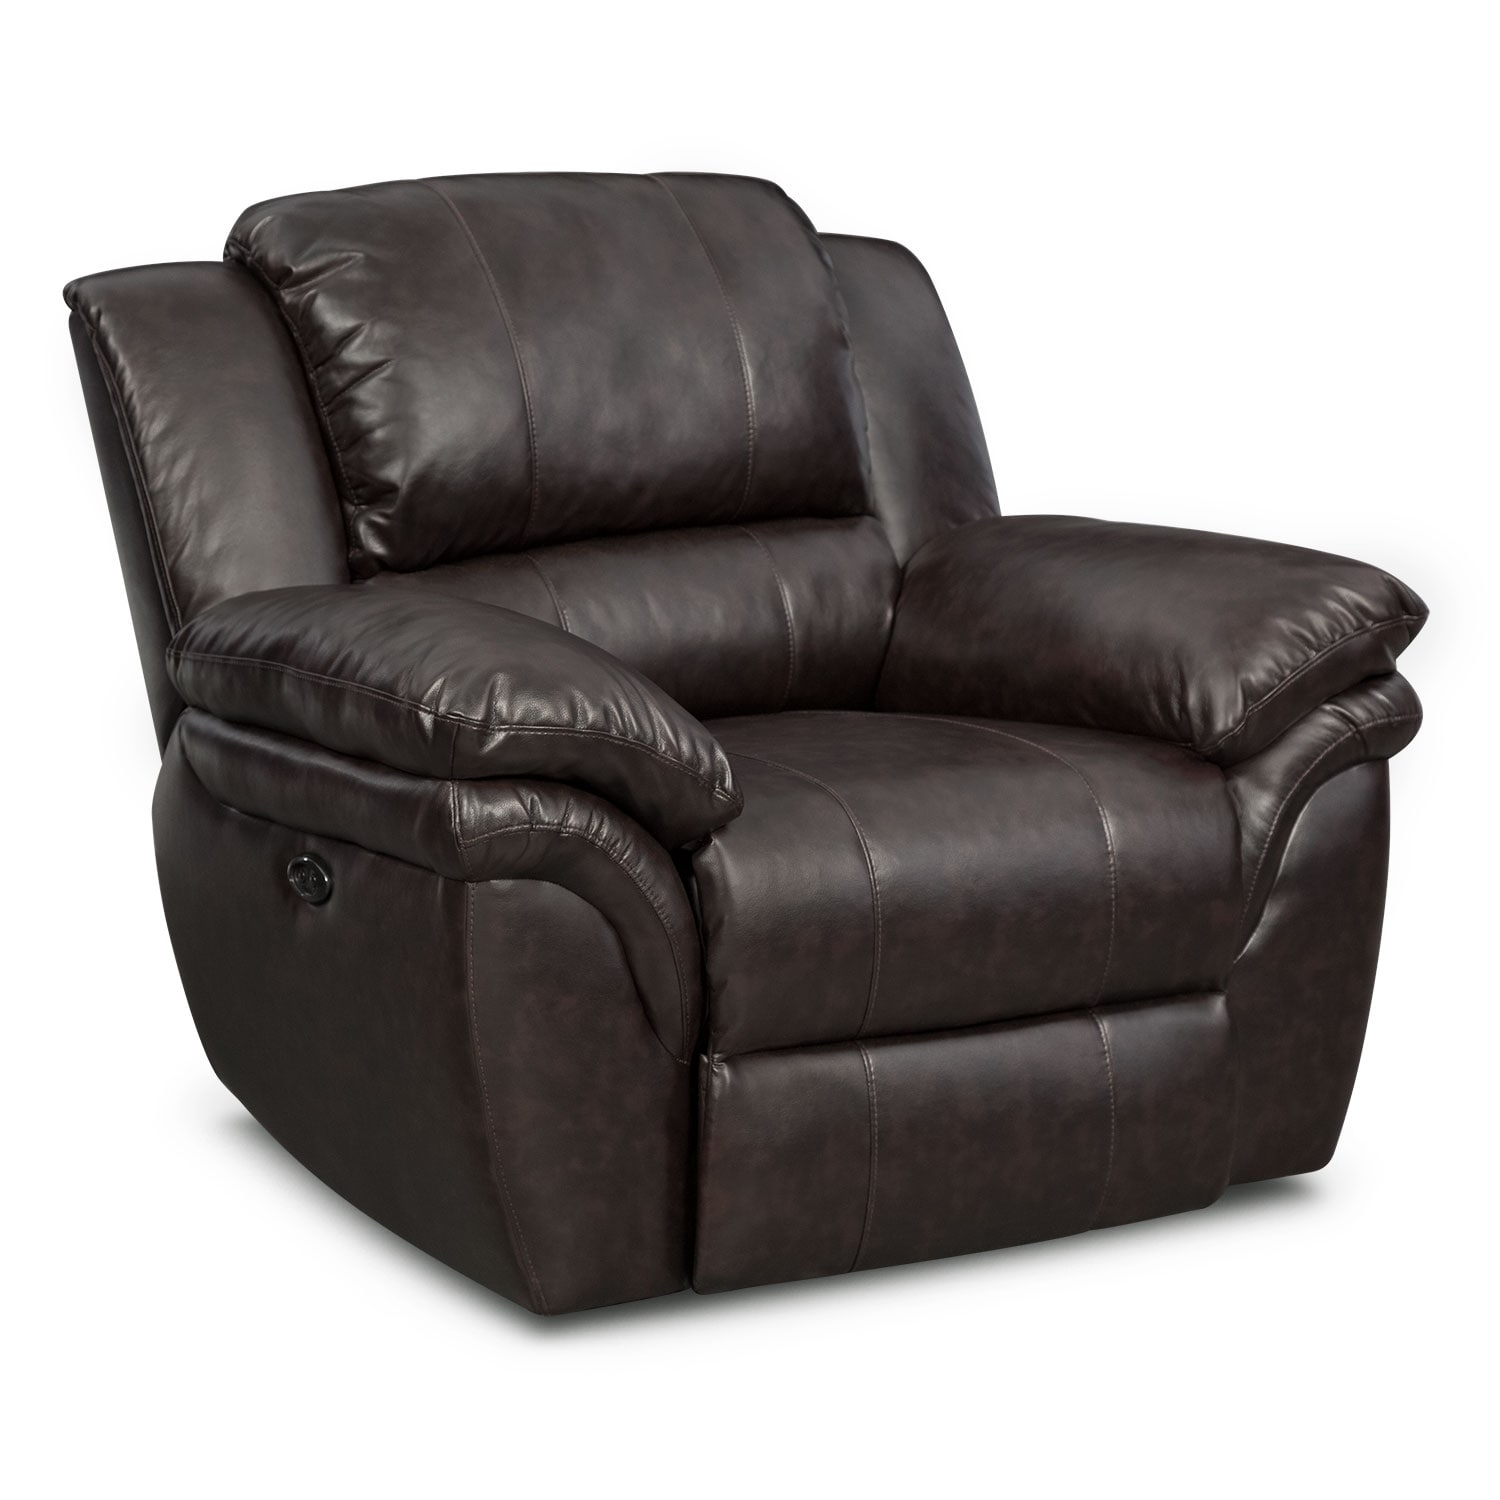 Living Room Furniture - Aldo Dual-Power Recliner